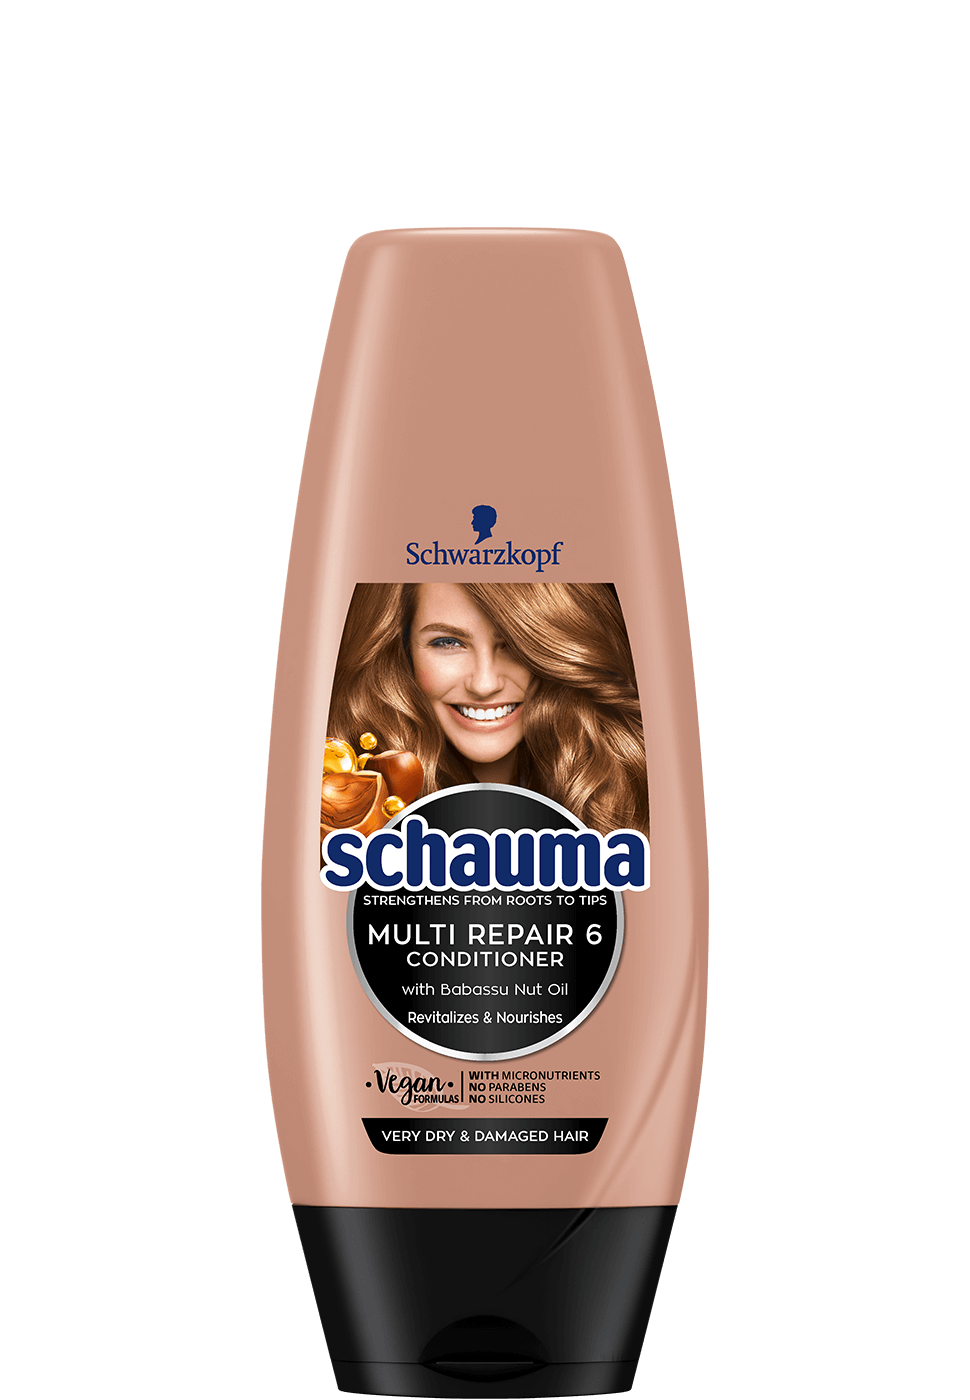 schauma_com_multi_repair_6_conditioner_970x1400